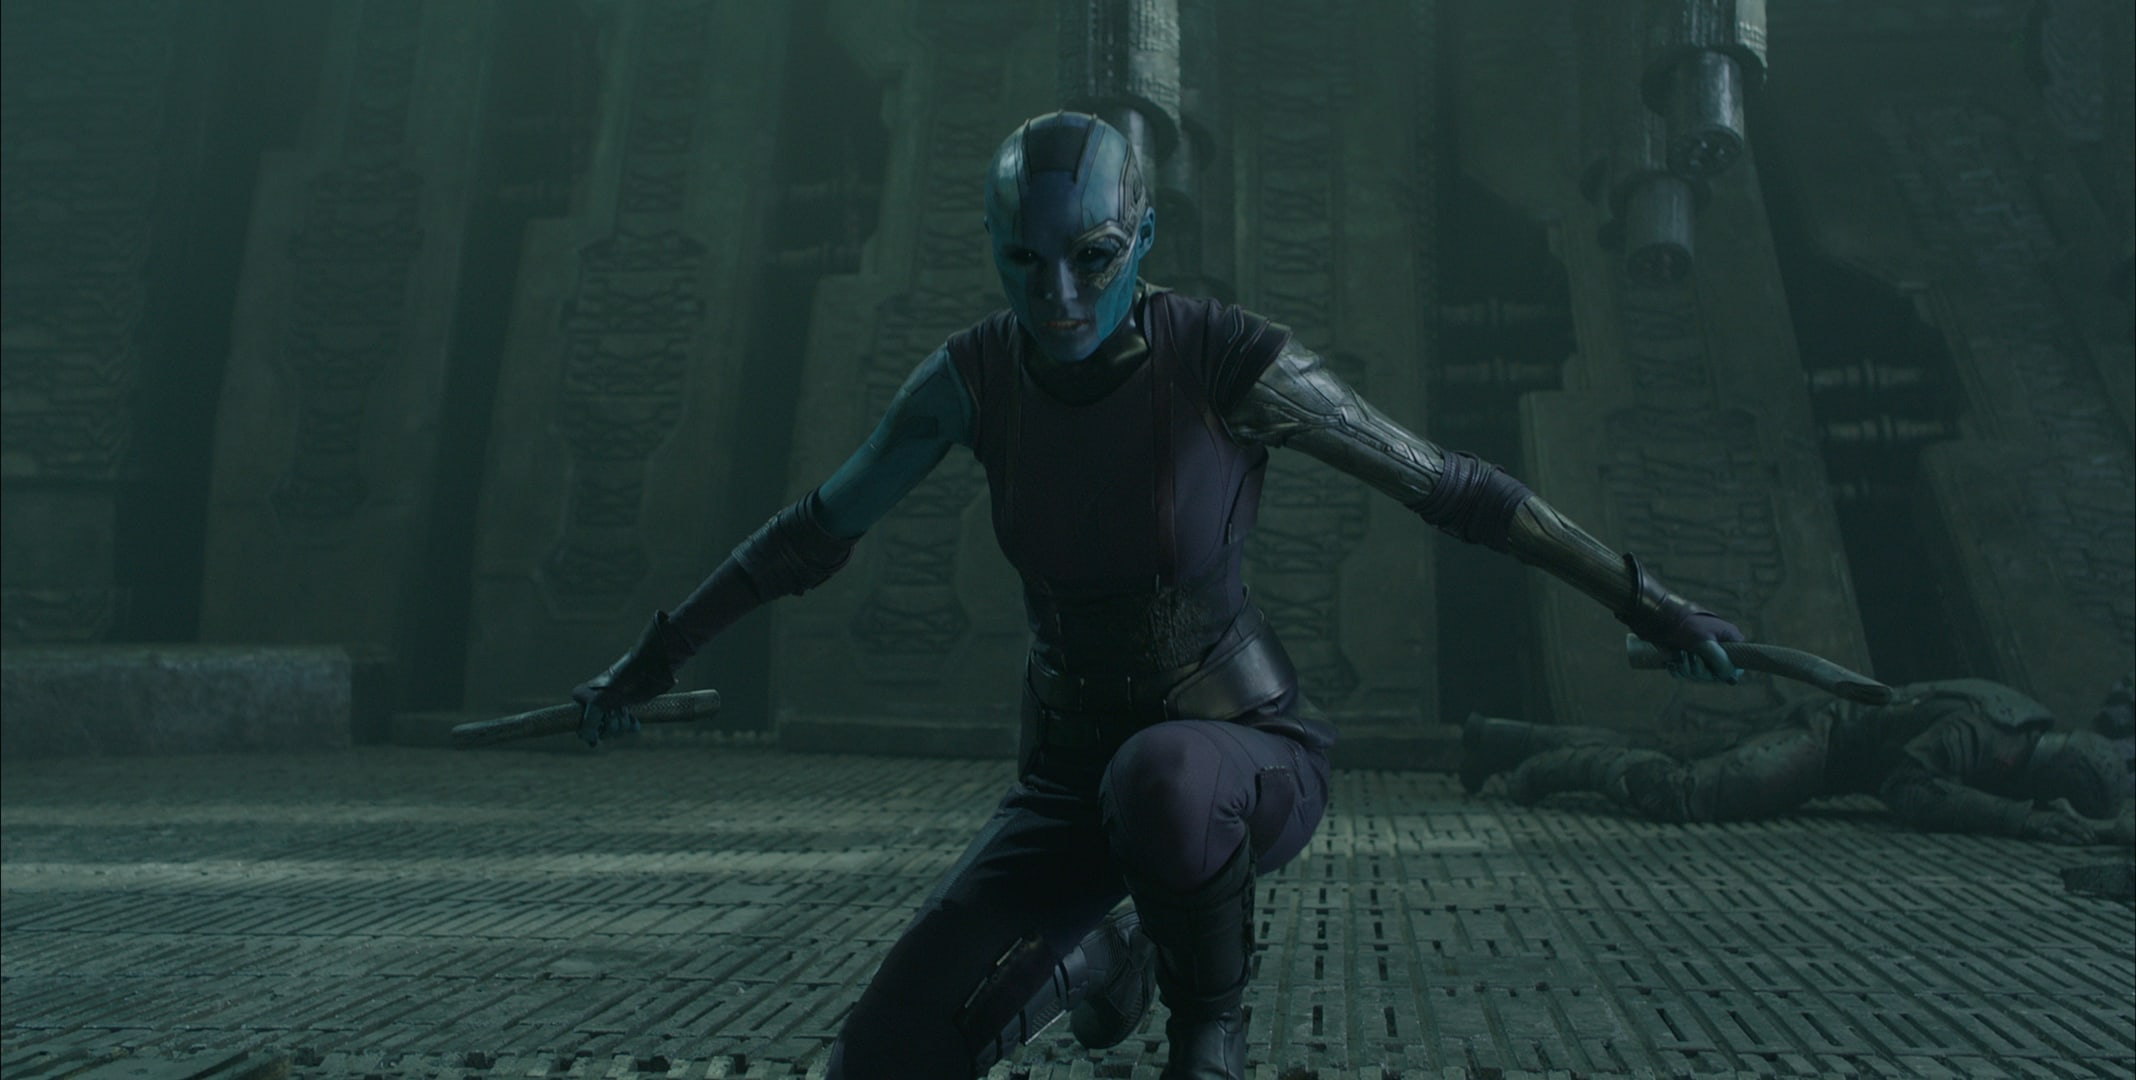 Karen Gillan as Nebula holding daggers in the film Guardians of the Galaxy